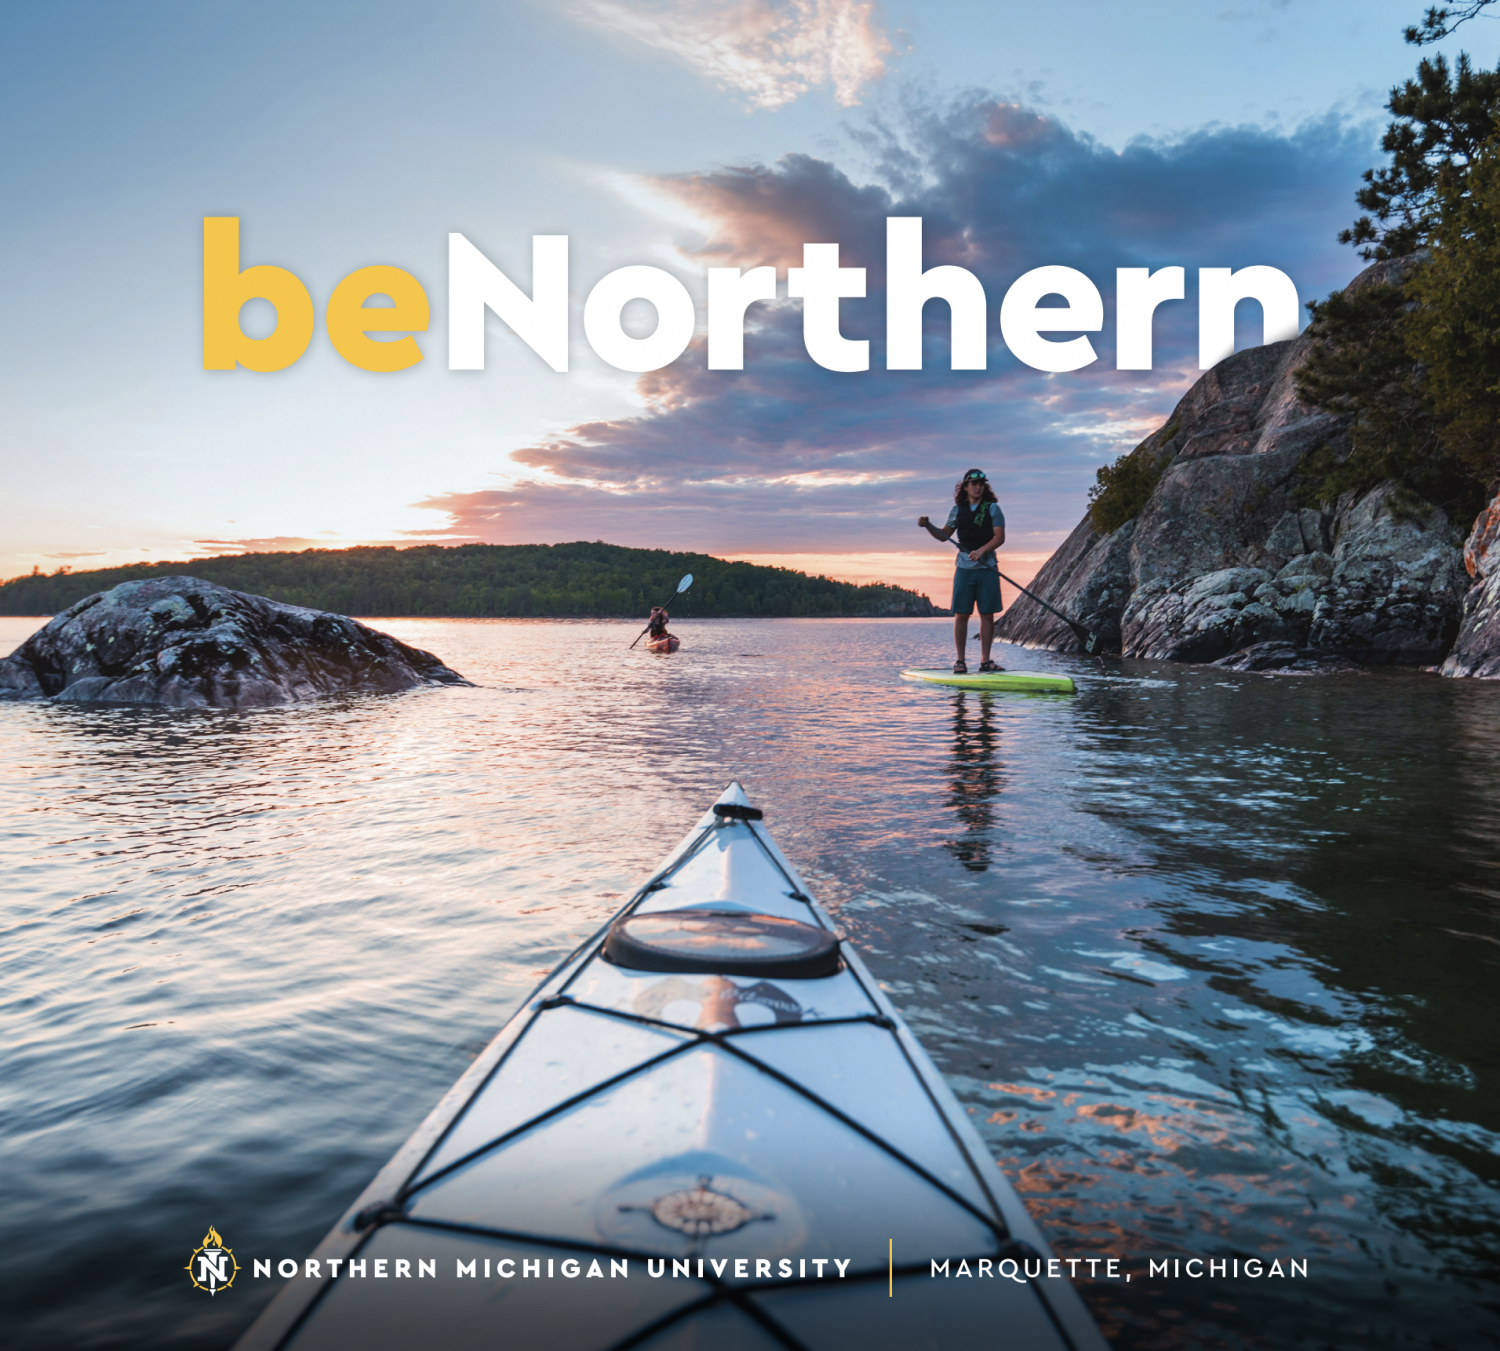 Be Northern Digital Advertisement